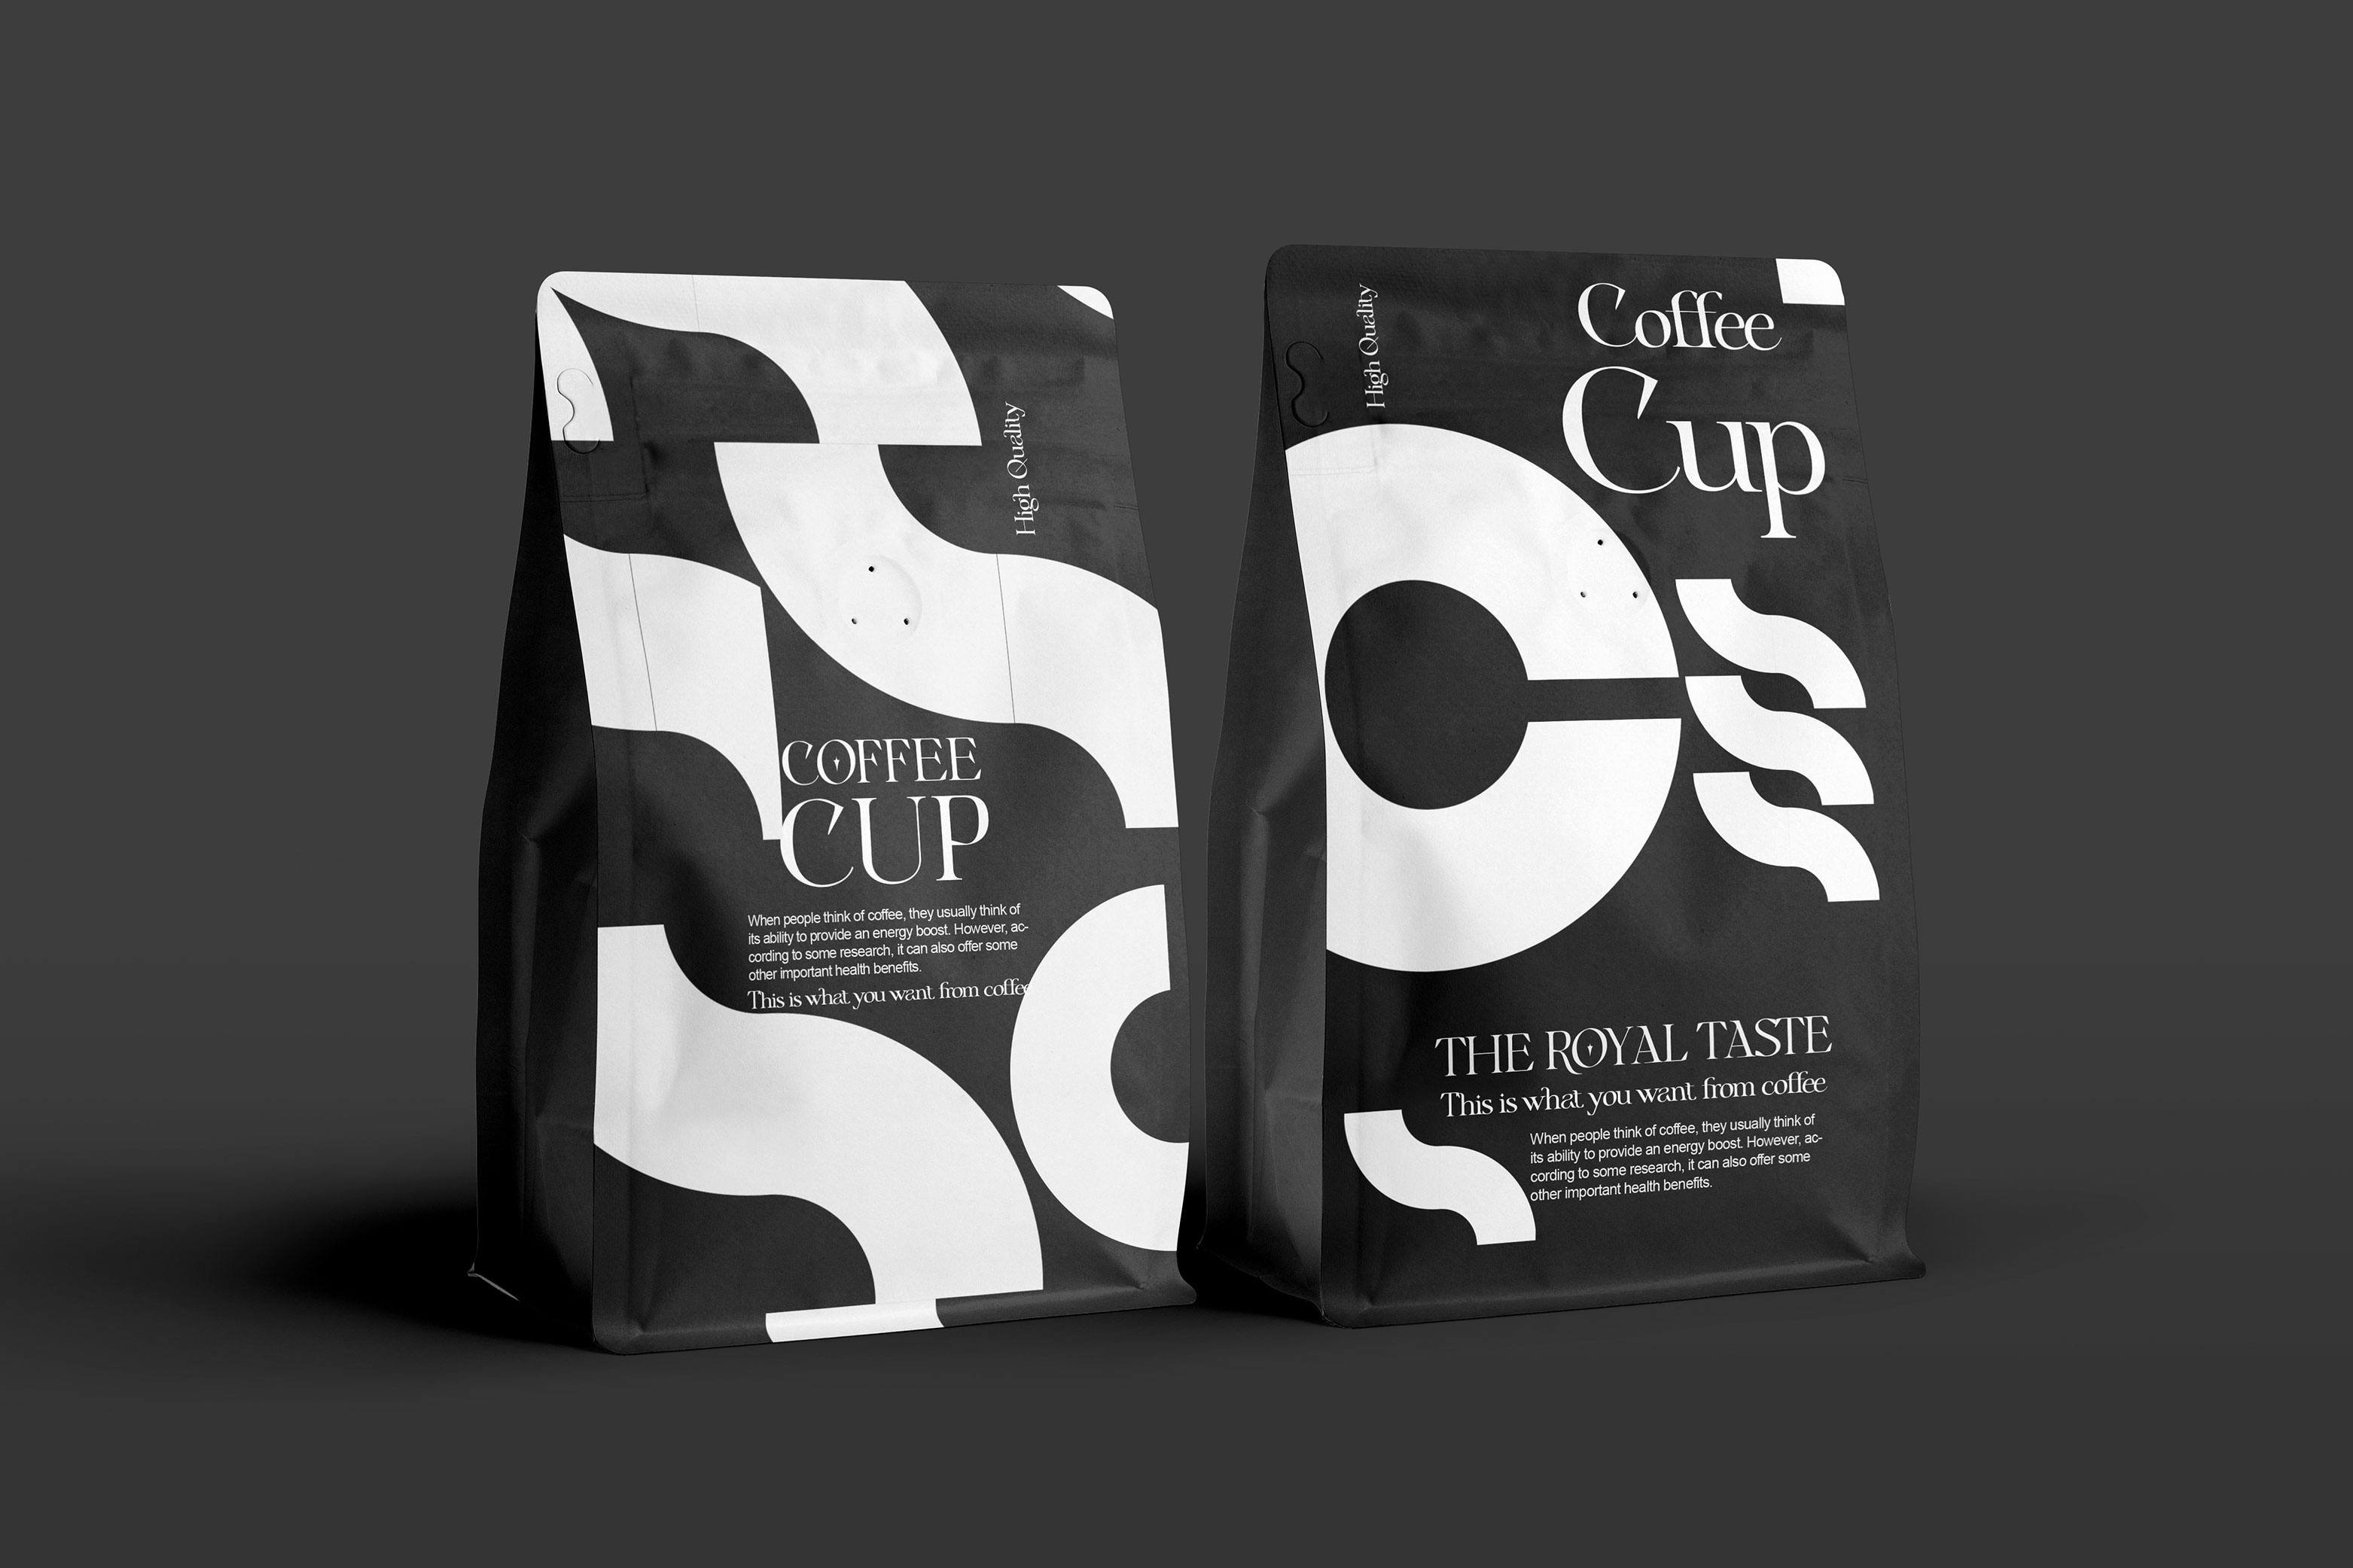 Taha Fakouri Creates a Coffee Cup Packaging Design